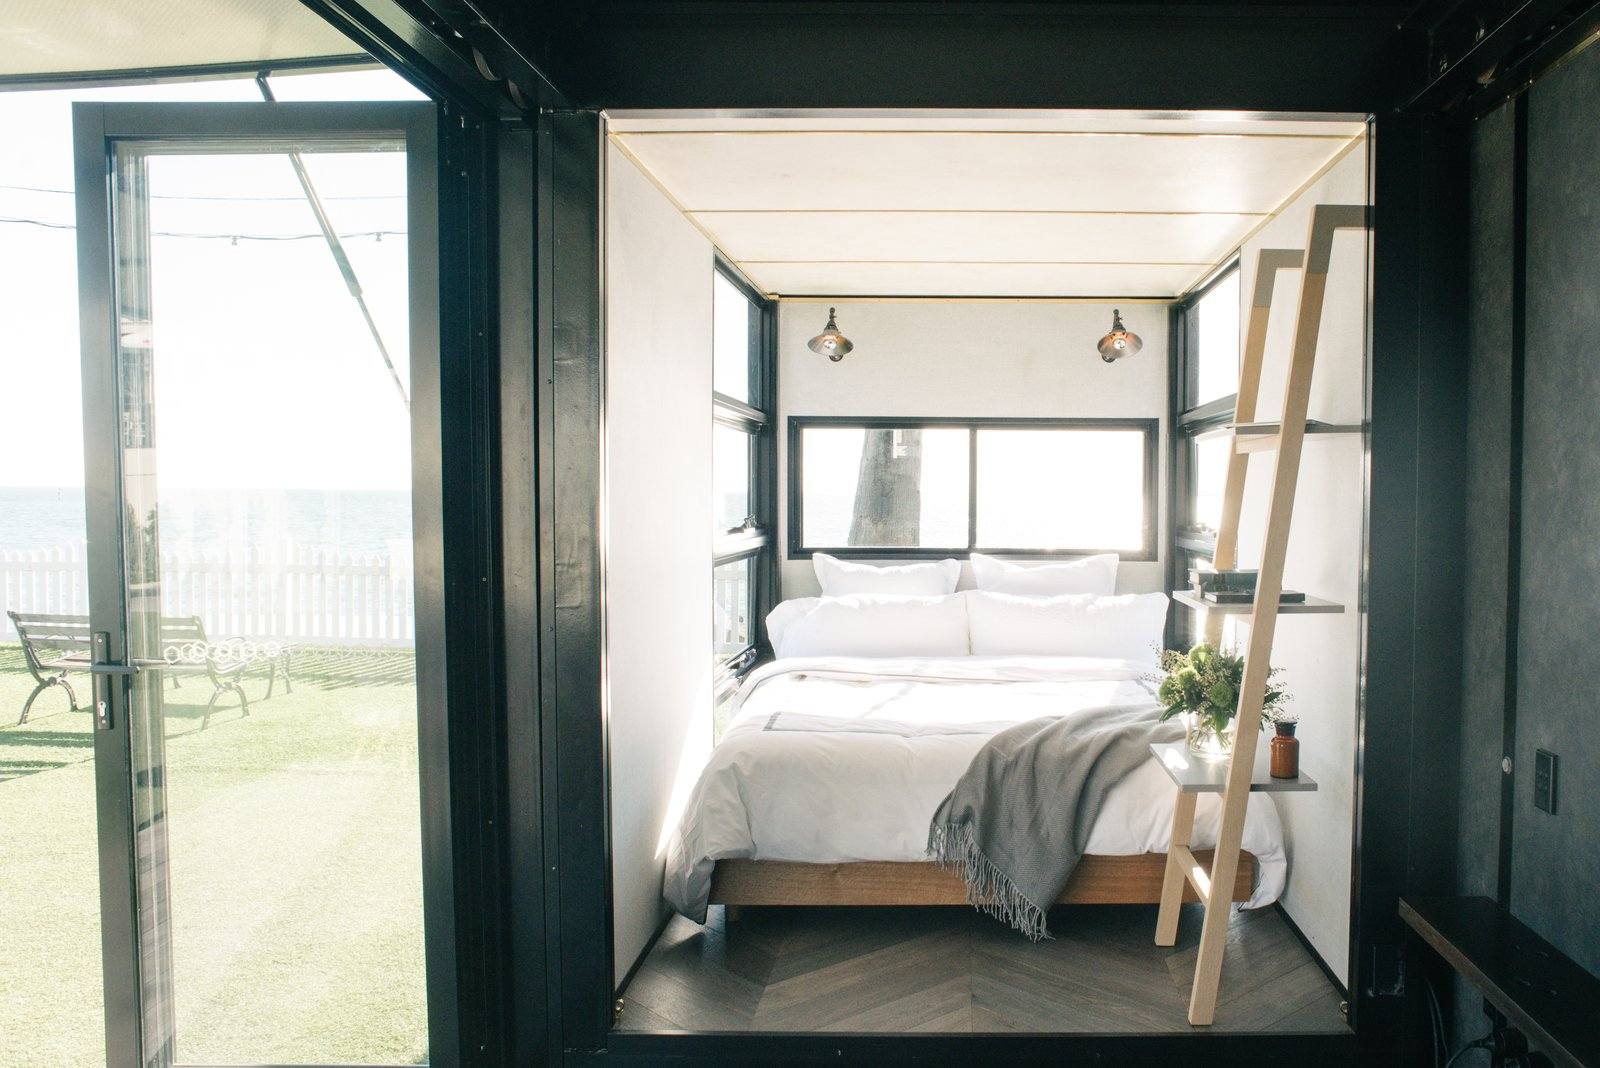 Photo 6 of 9 in An Australian Firm Makes Portable Hotel Rooms Out of Shipping Containers